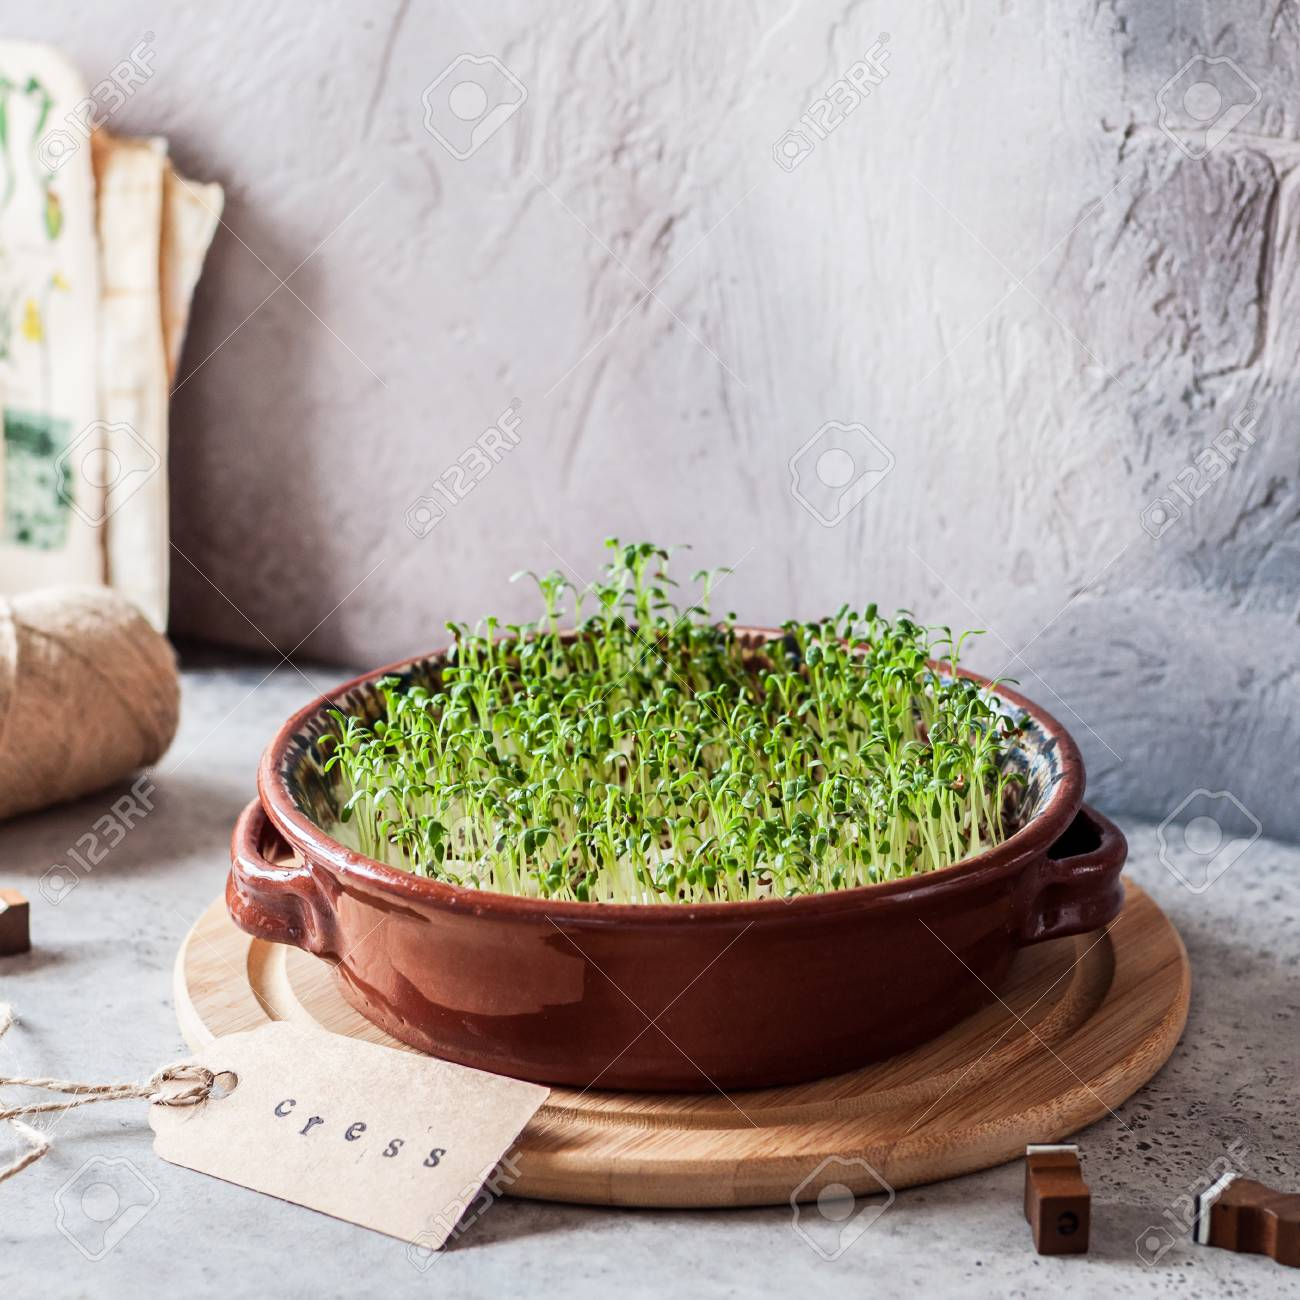 Growing Micro Greens, Sprouting Cress Salad Seeds - 121955047